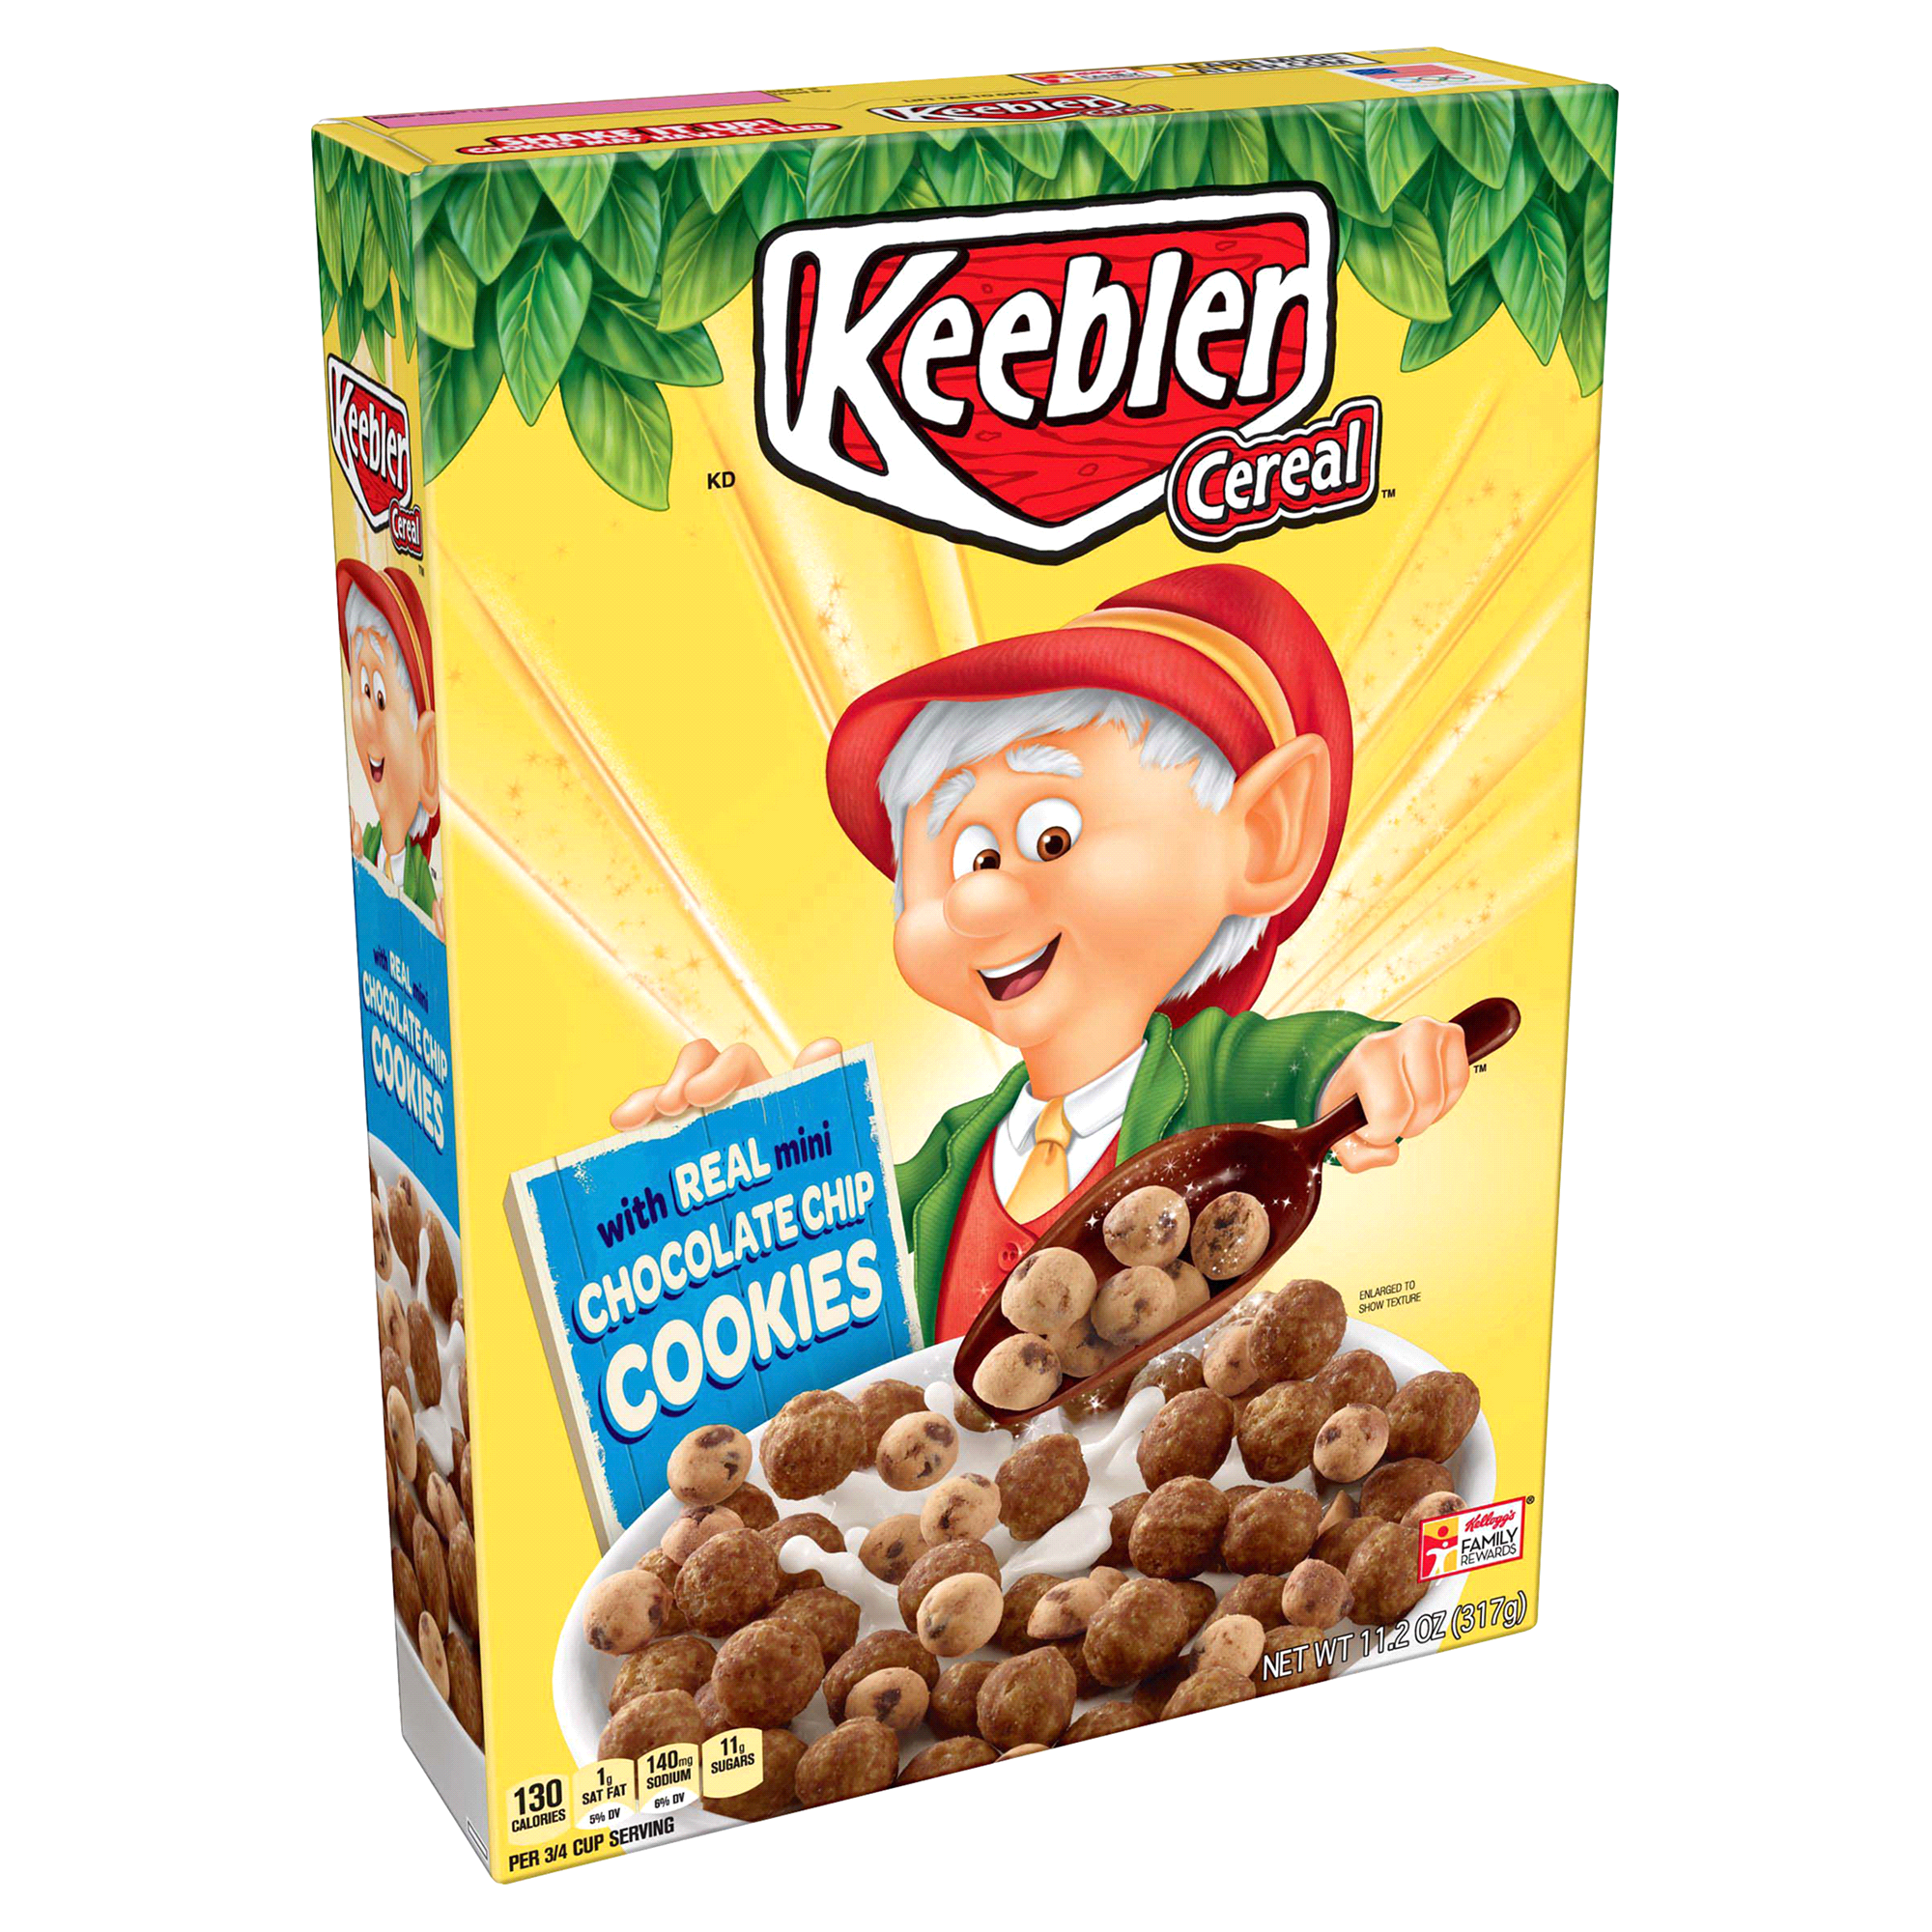 Keebler Cereal Chocolate Chip Cookies 11.2 Oz | Meijer.com